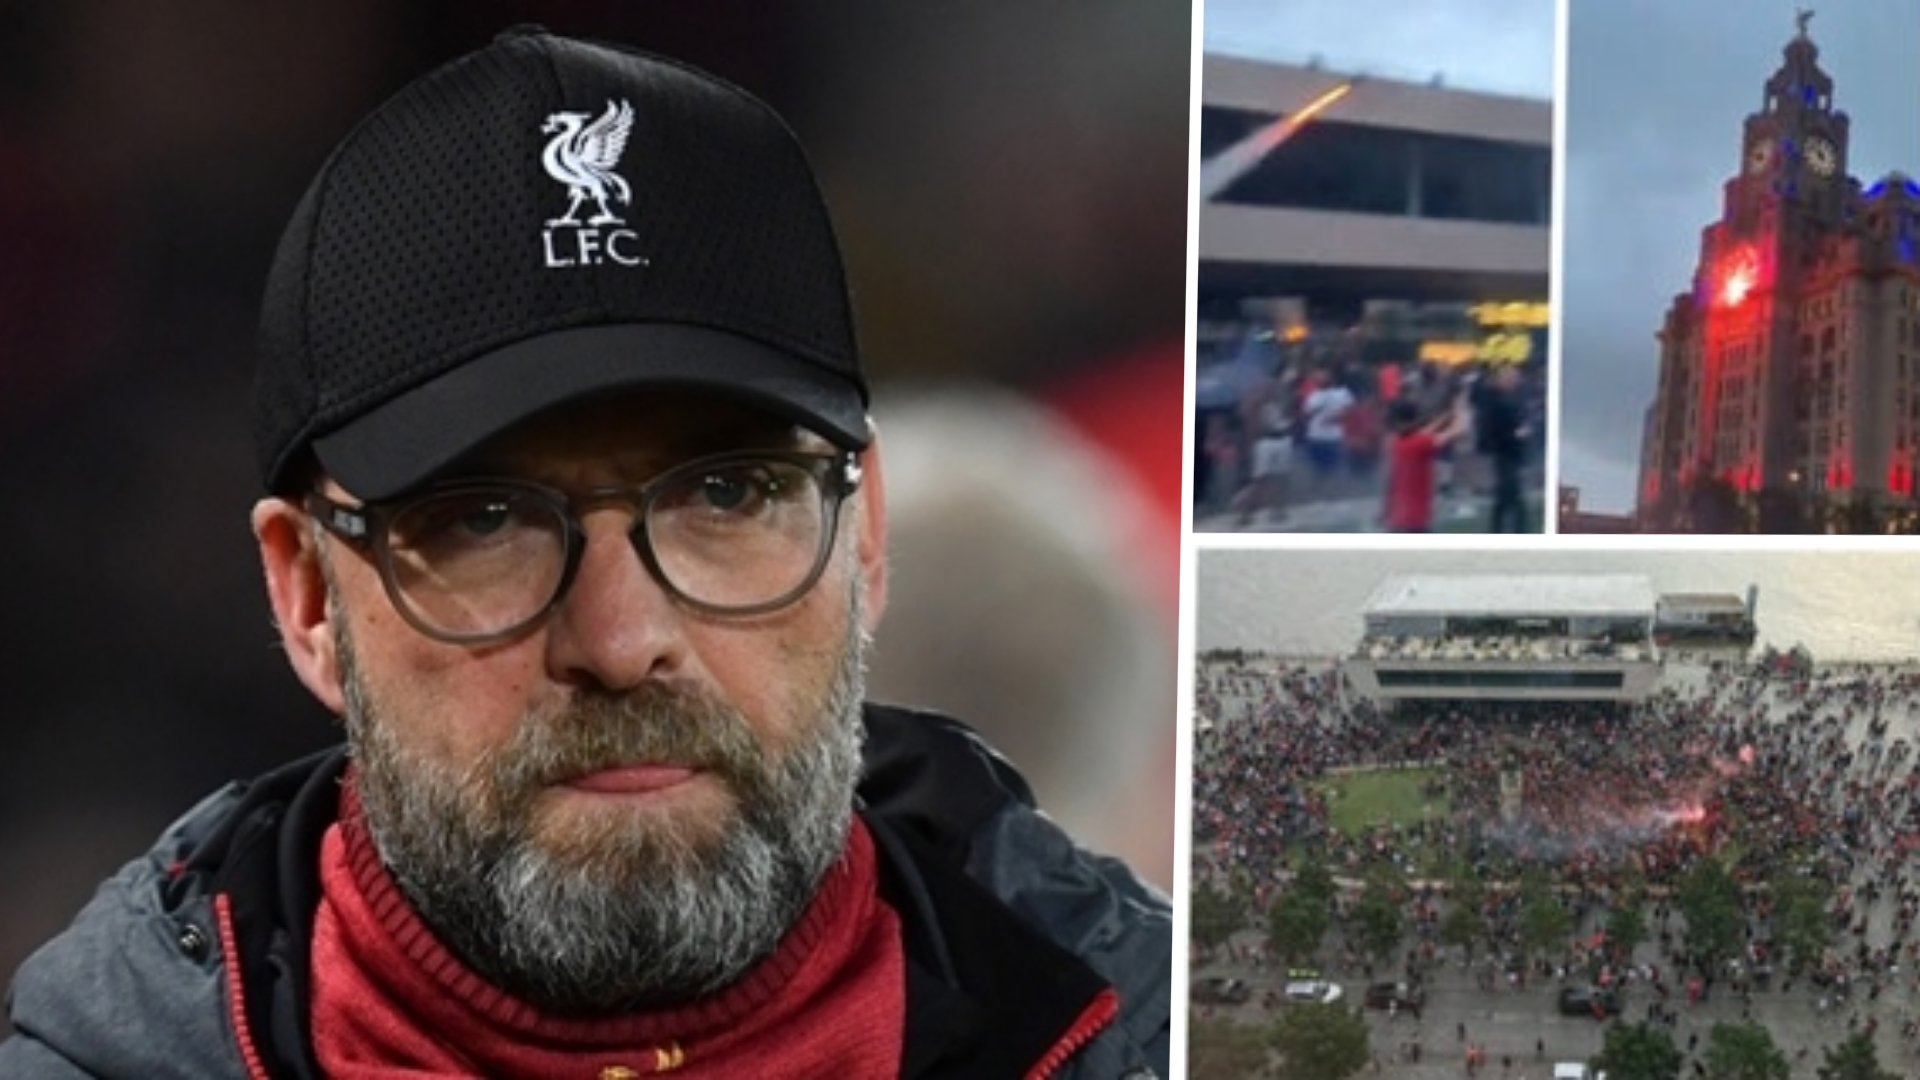 'We have to stay disciplined' - Klopp backs Liverpool Council's call for fans to celebrate Premier League title at home